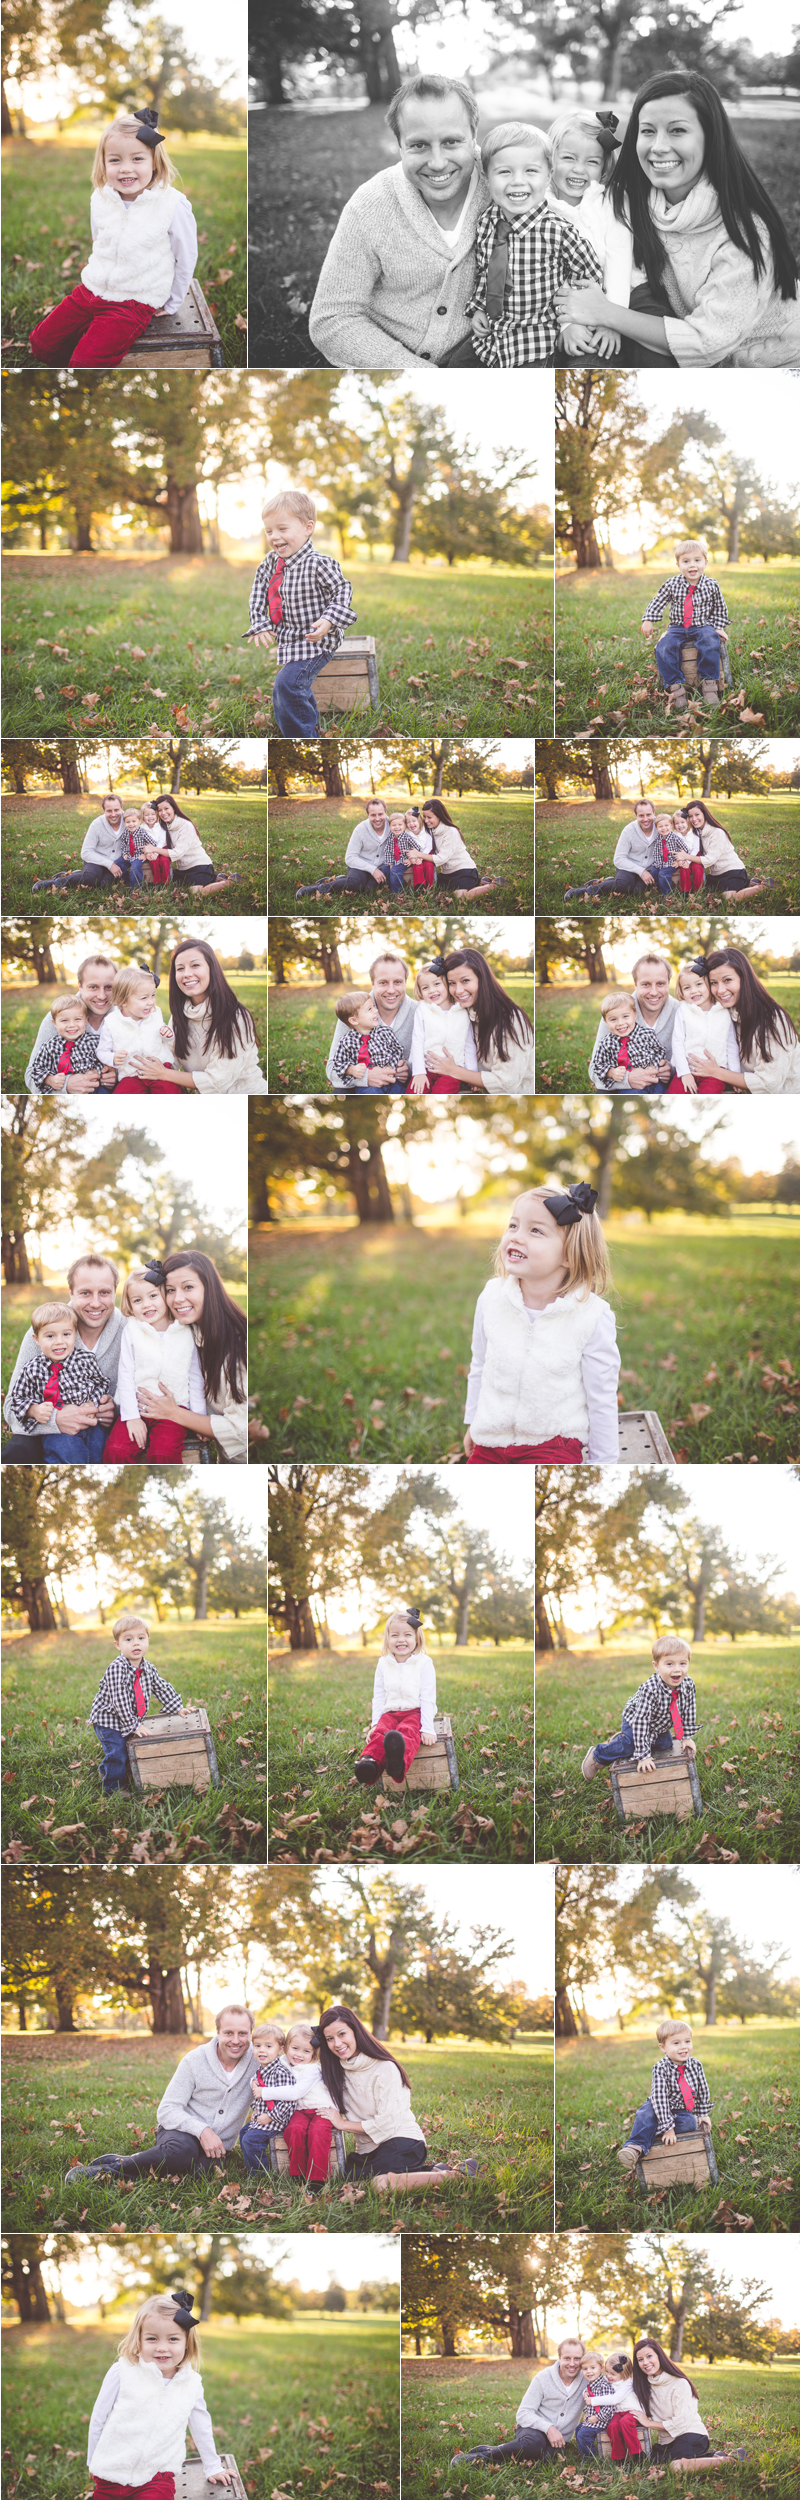 nashville-tennessee-family-photographer-sara-e-rose-photography-01